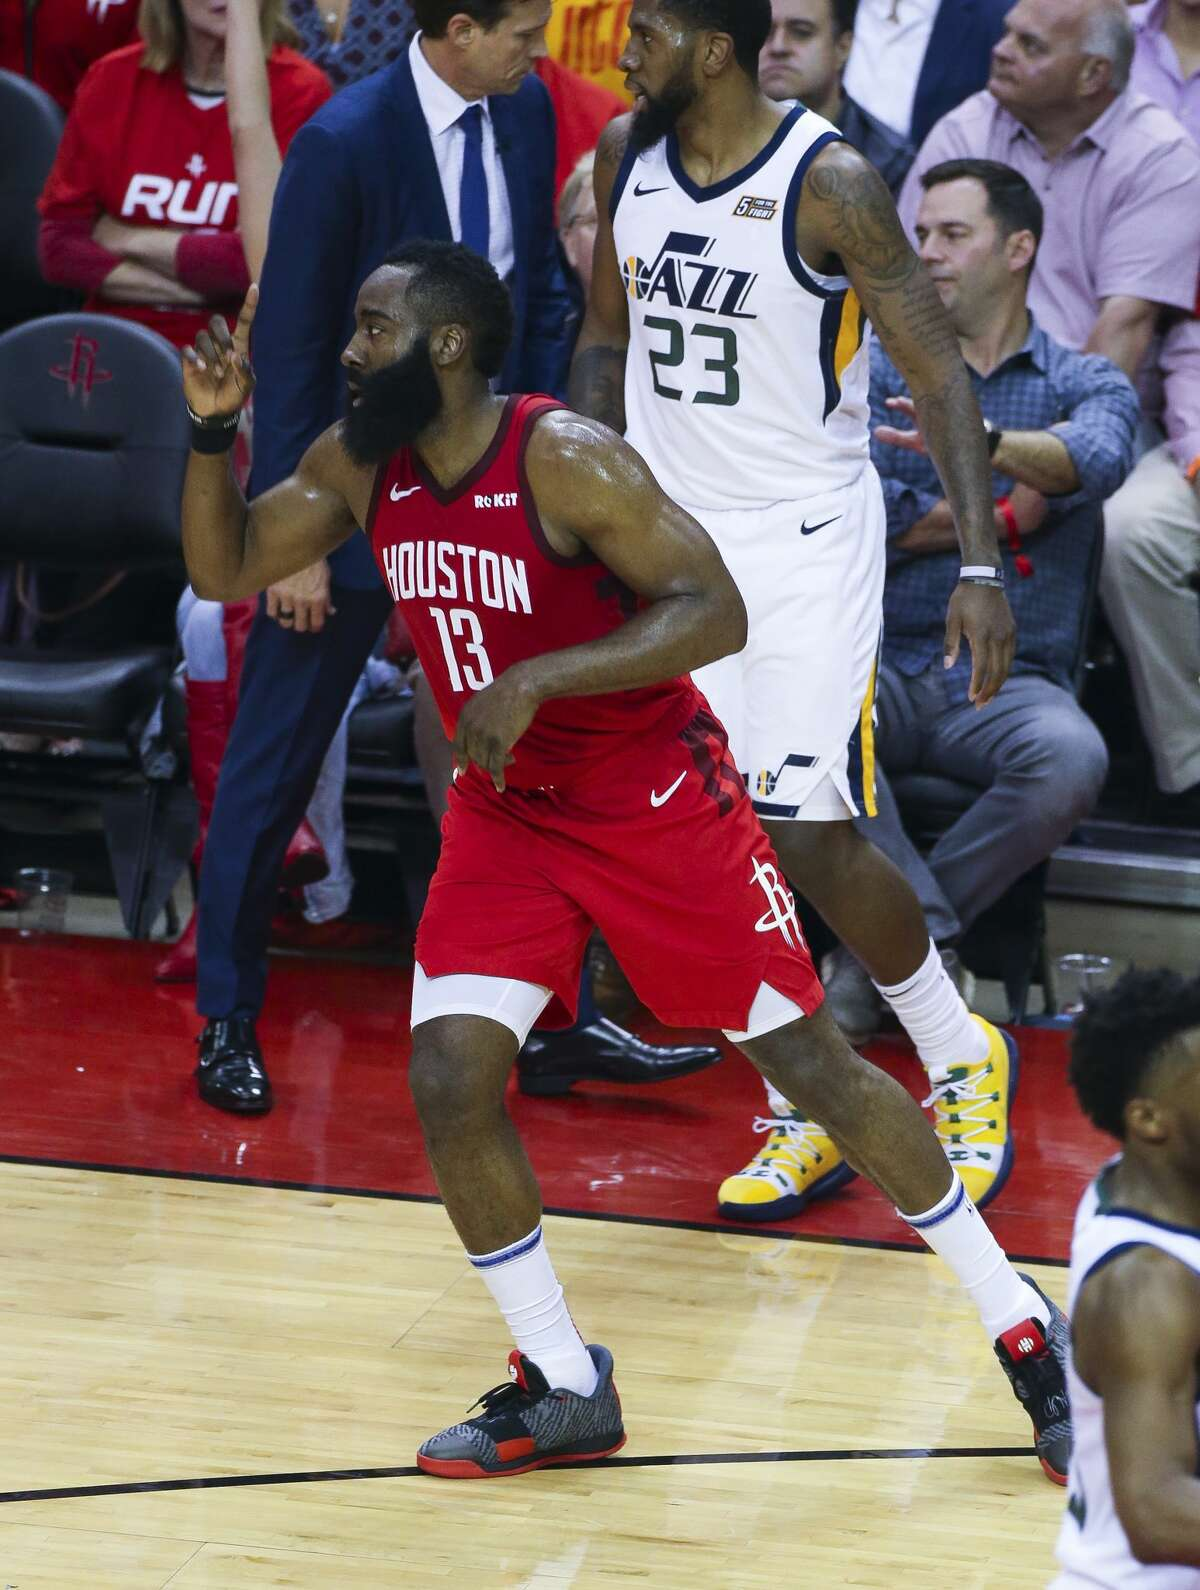 Houston Rockets guard James Harden (13) celebrates a three point shot during Game 5 of an NBA first round playoff series at Toyota Center in Houston, Wednesday, April 24, 2019.